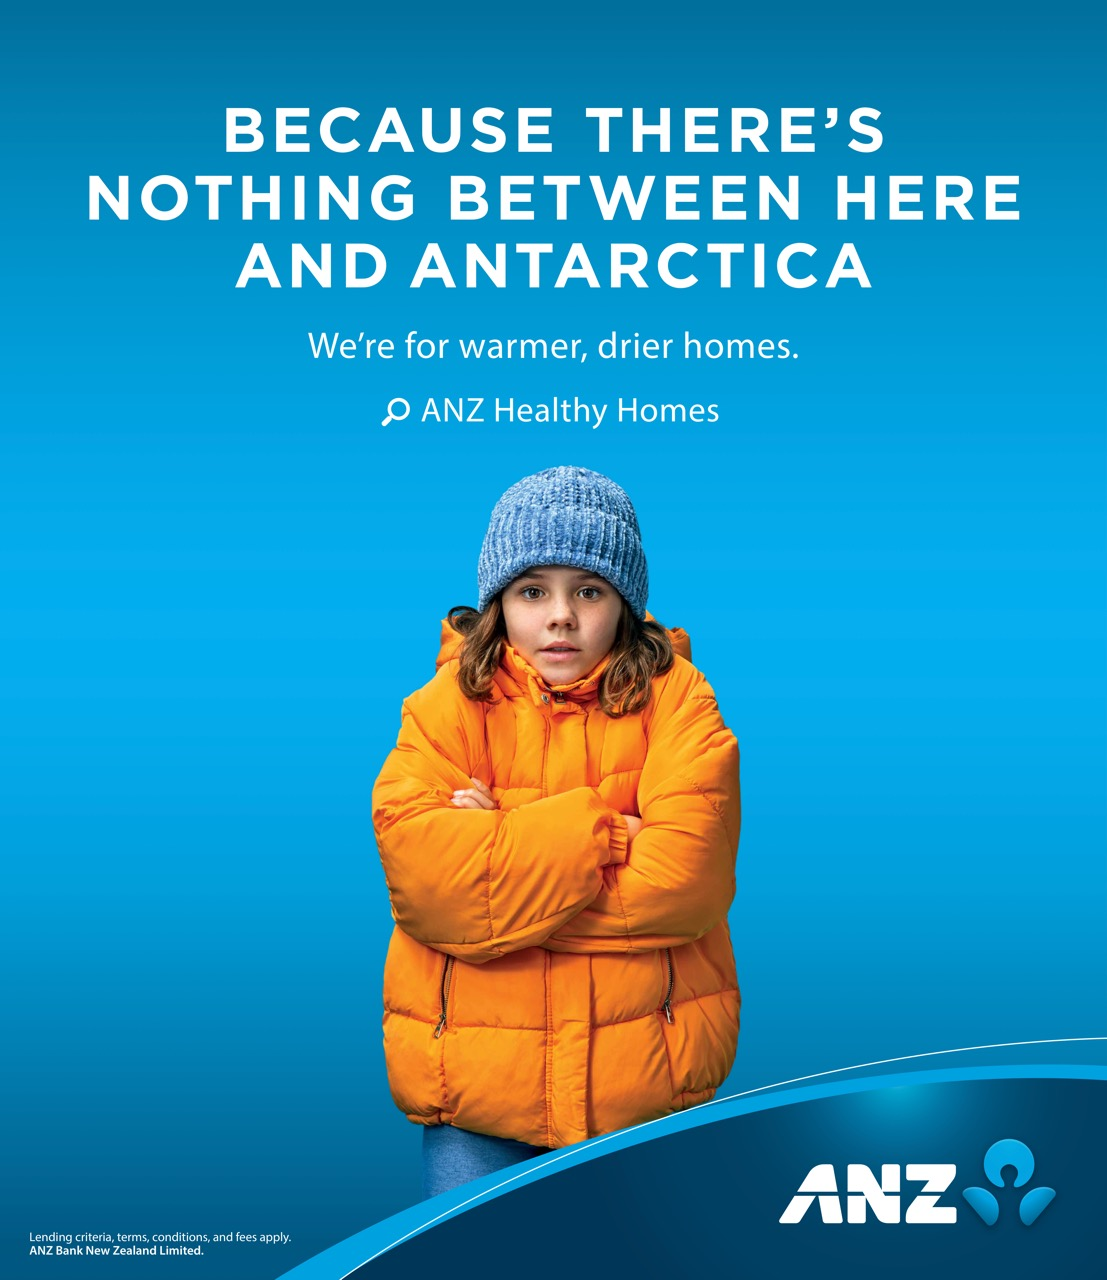 Cold climate deniers are the focus of ANZ New Zealand's latest campaign via TBWA Group NZ